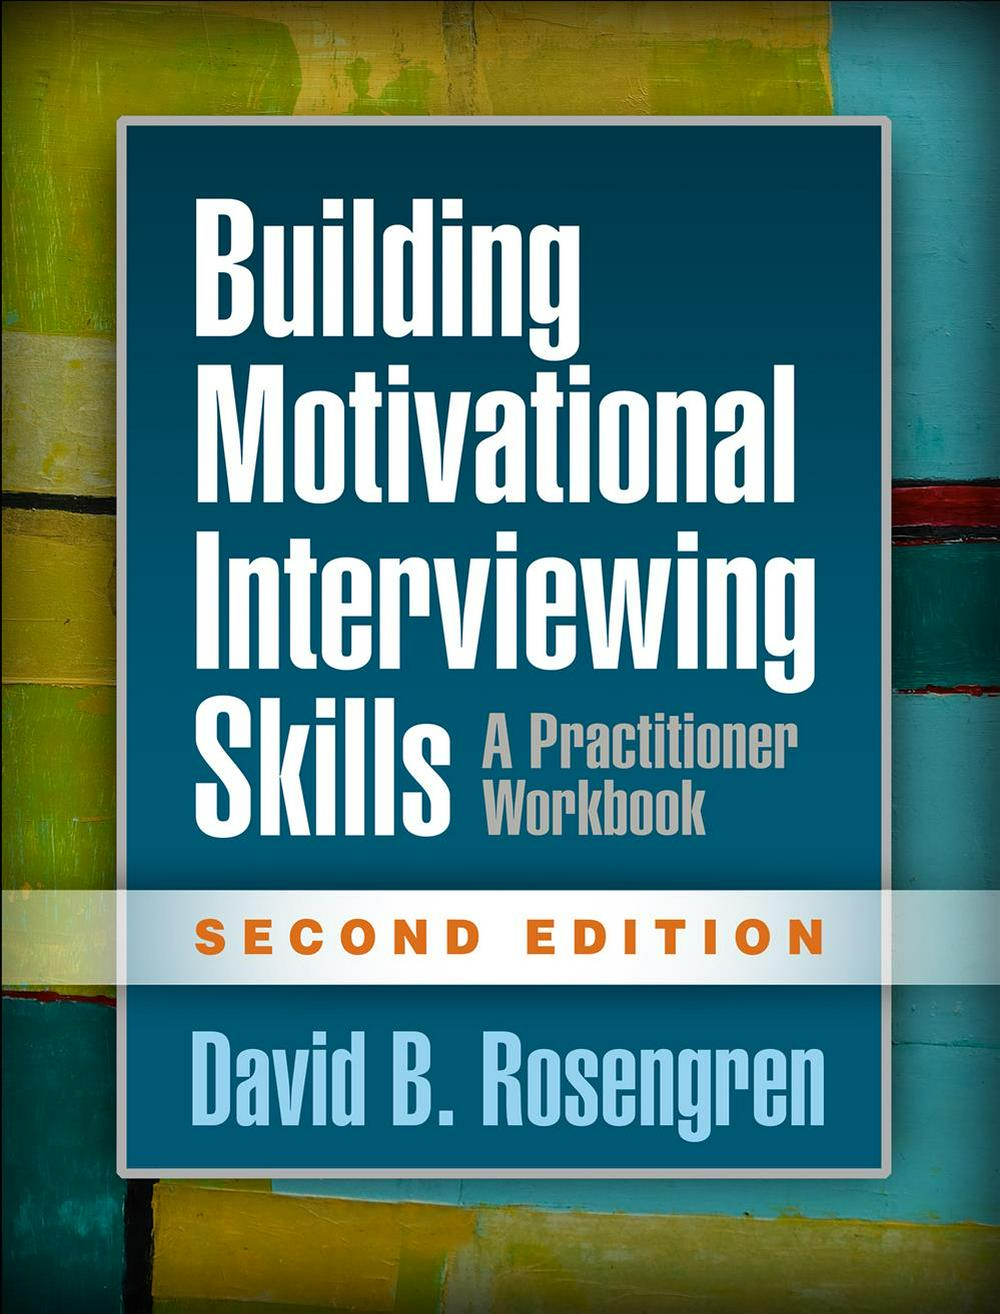 Building Motivational Interviewing Skills, Second Edition: A Practitioner Workbook by David B Rosengren, ISBN: 9781462532063